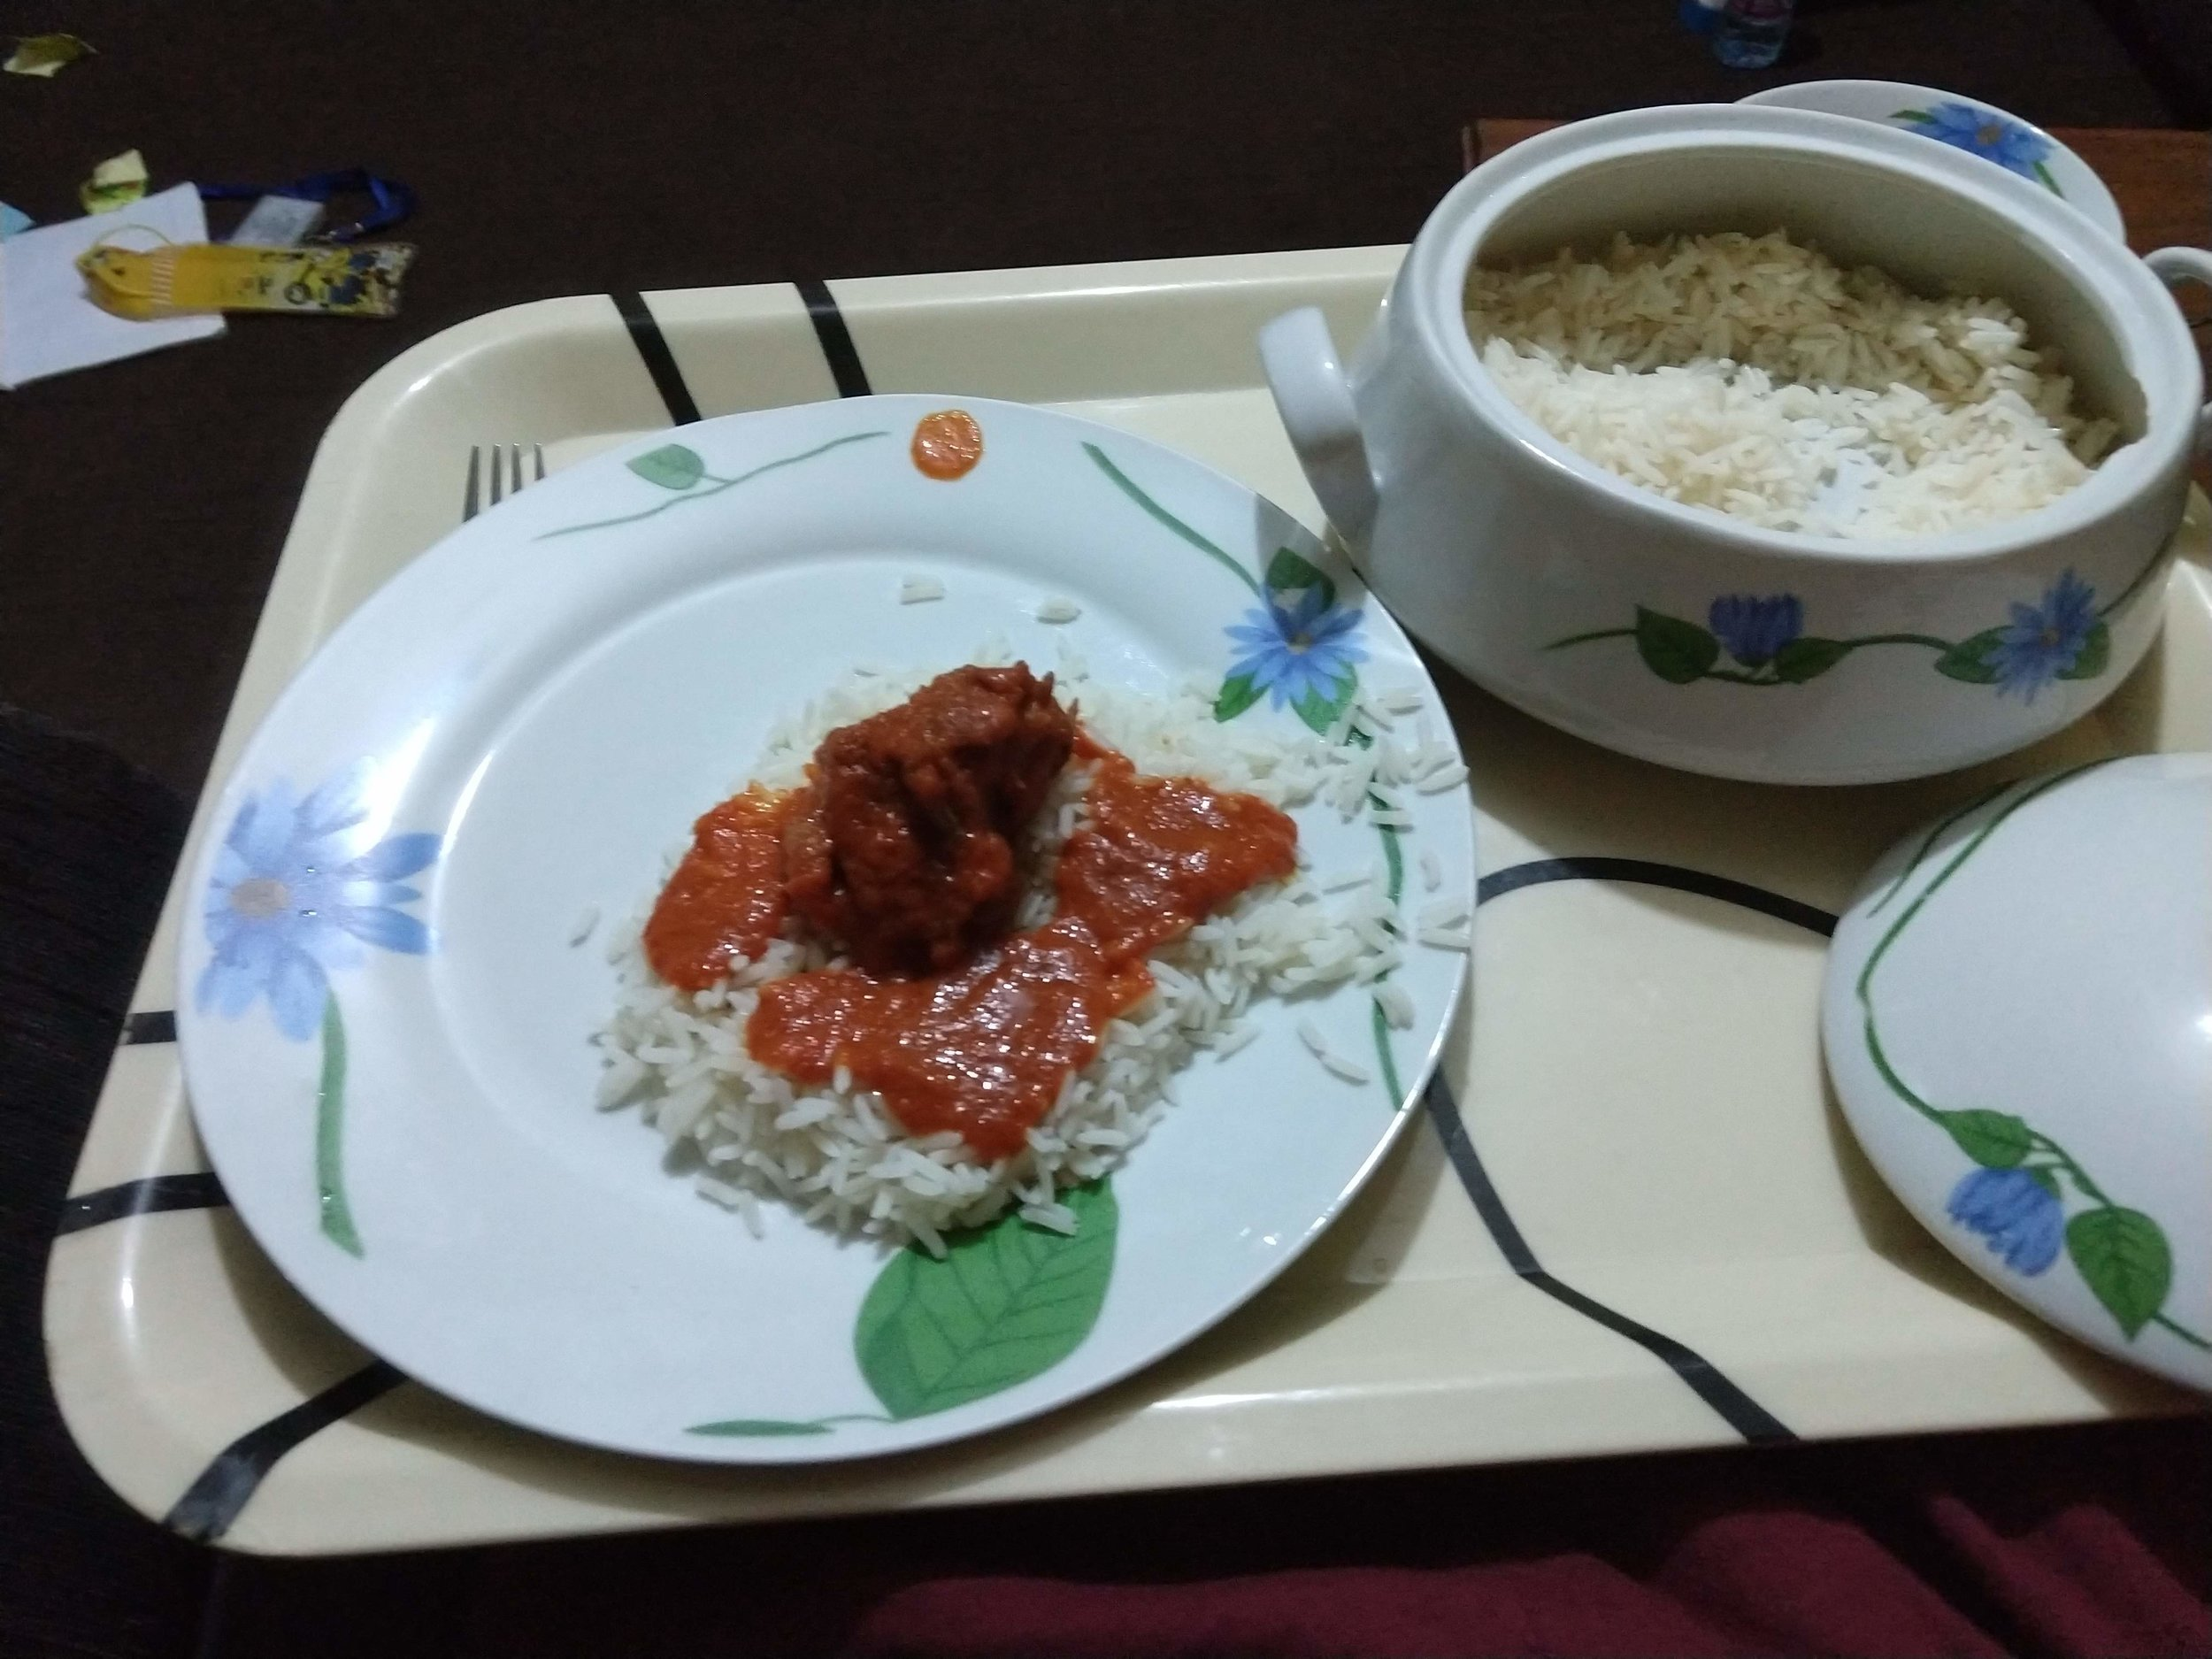 One of my first tastes of homemade Nigerian food.